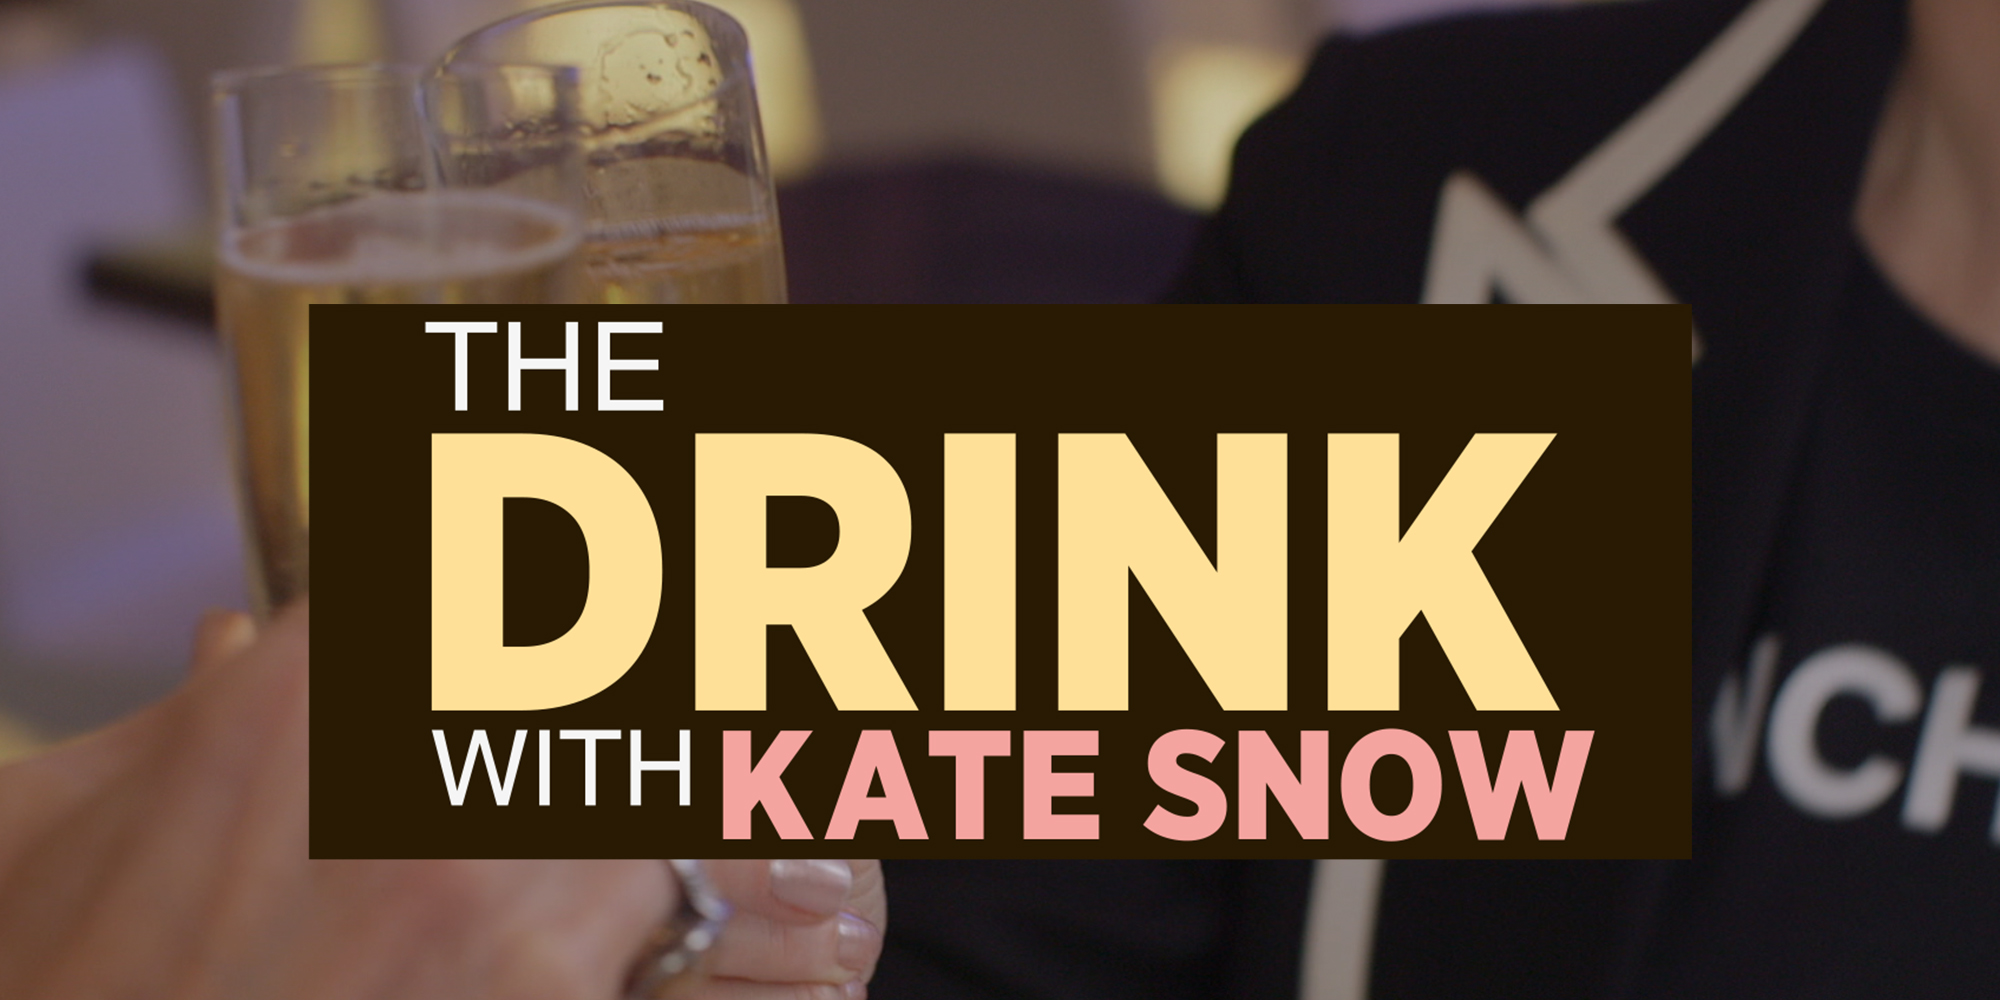 The Drink with Kate Snow